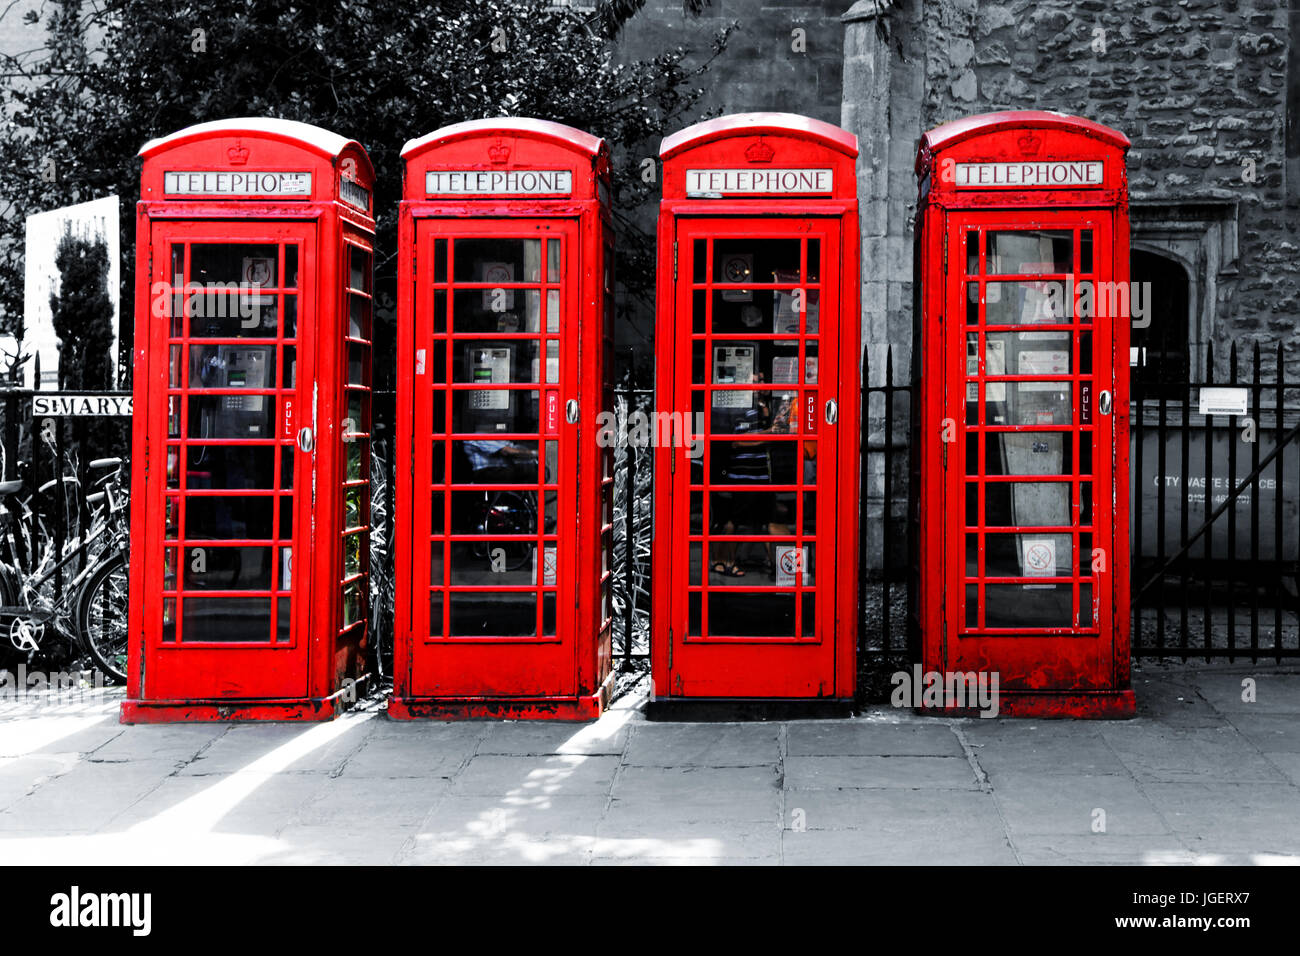 London Call box, British red telephone box, - Stock Image